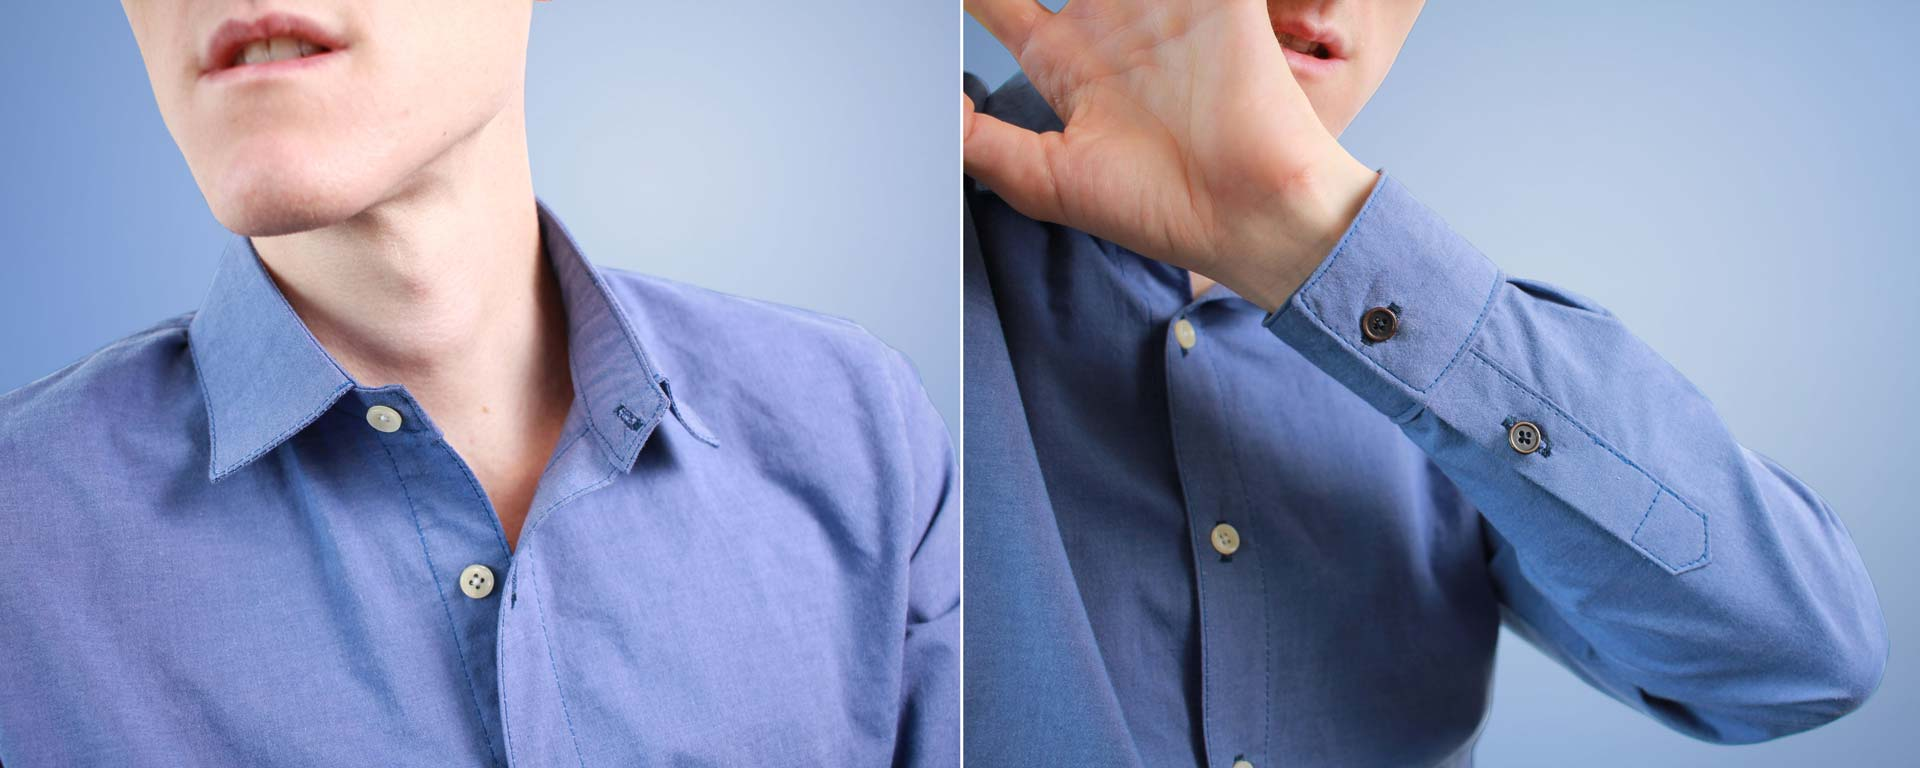 Handmade Blue Button-up Shirt collar and placket Details